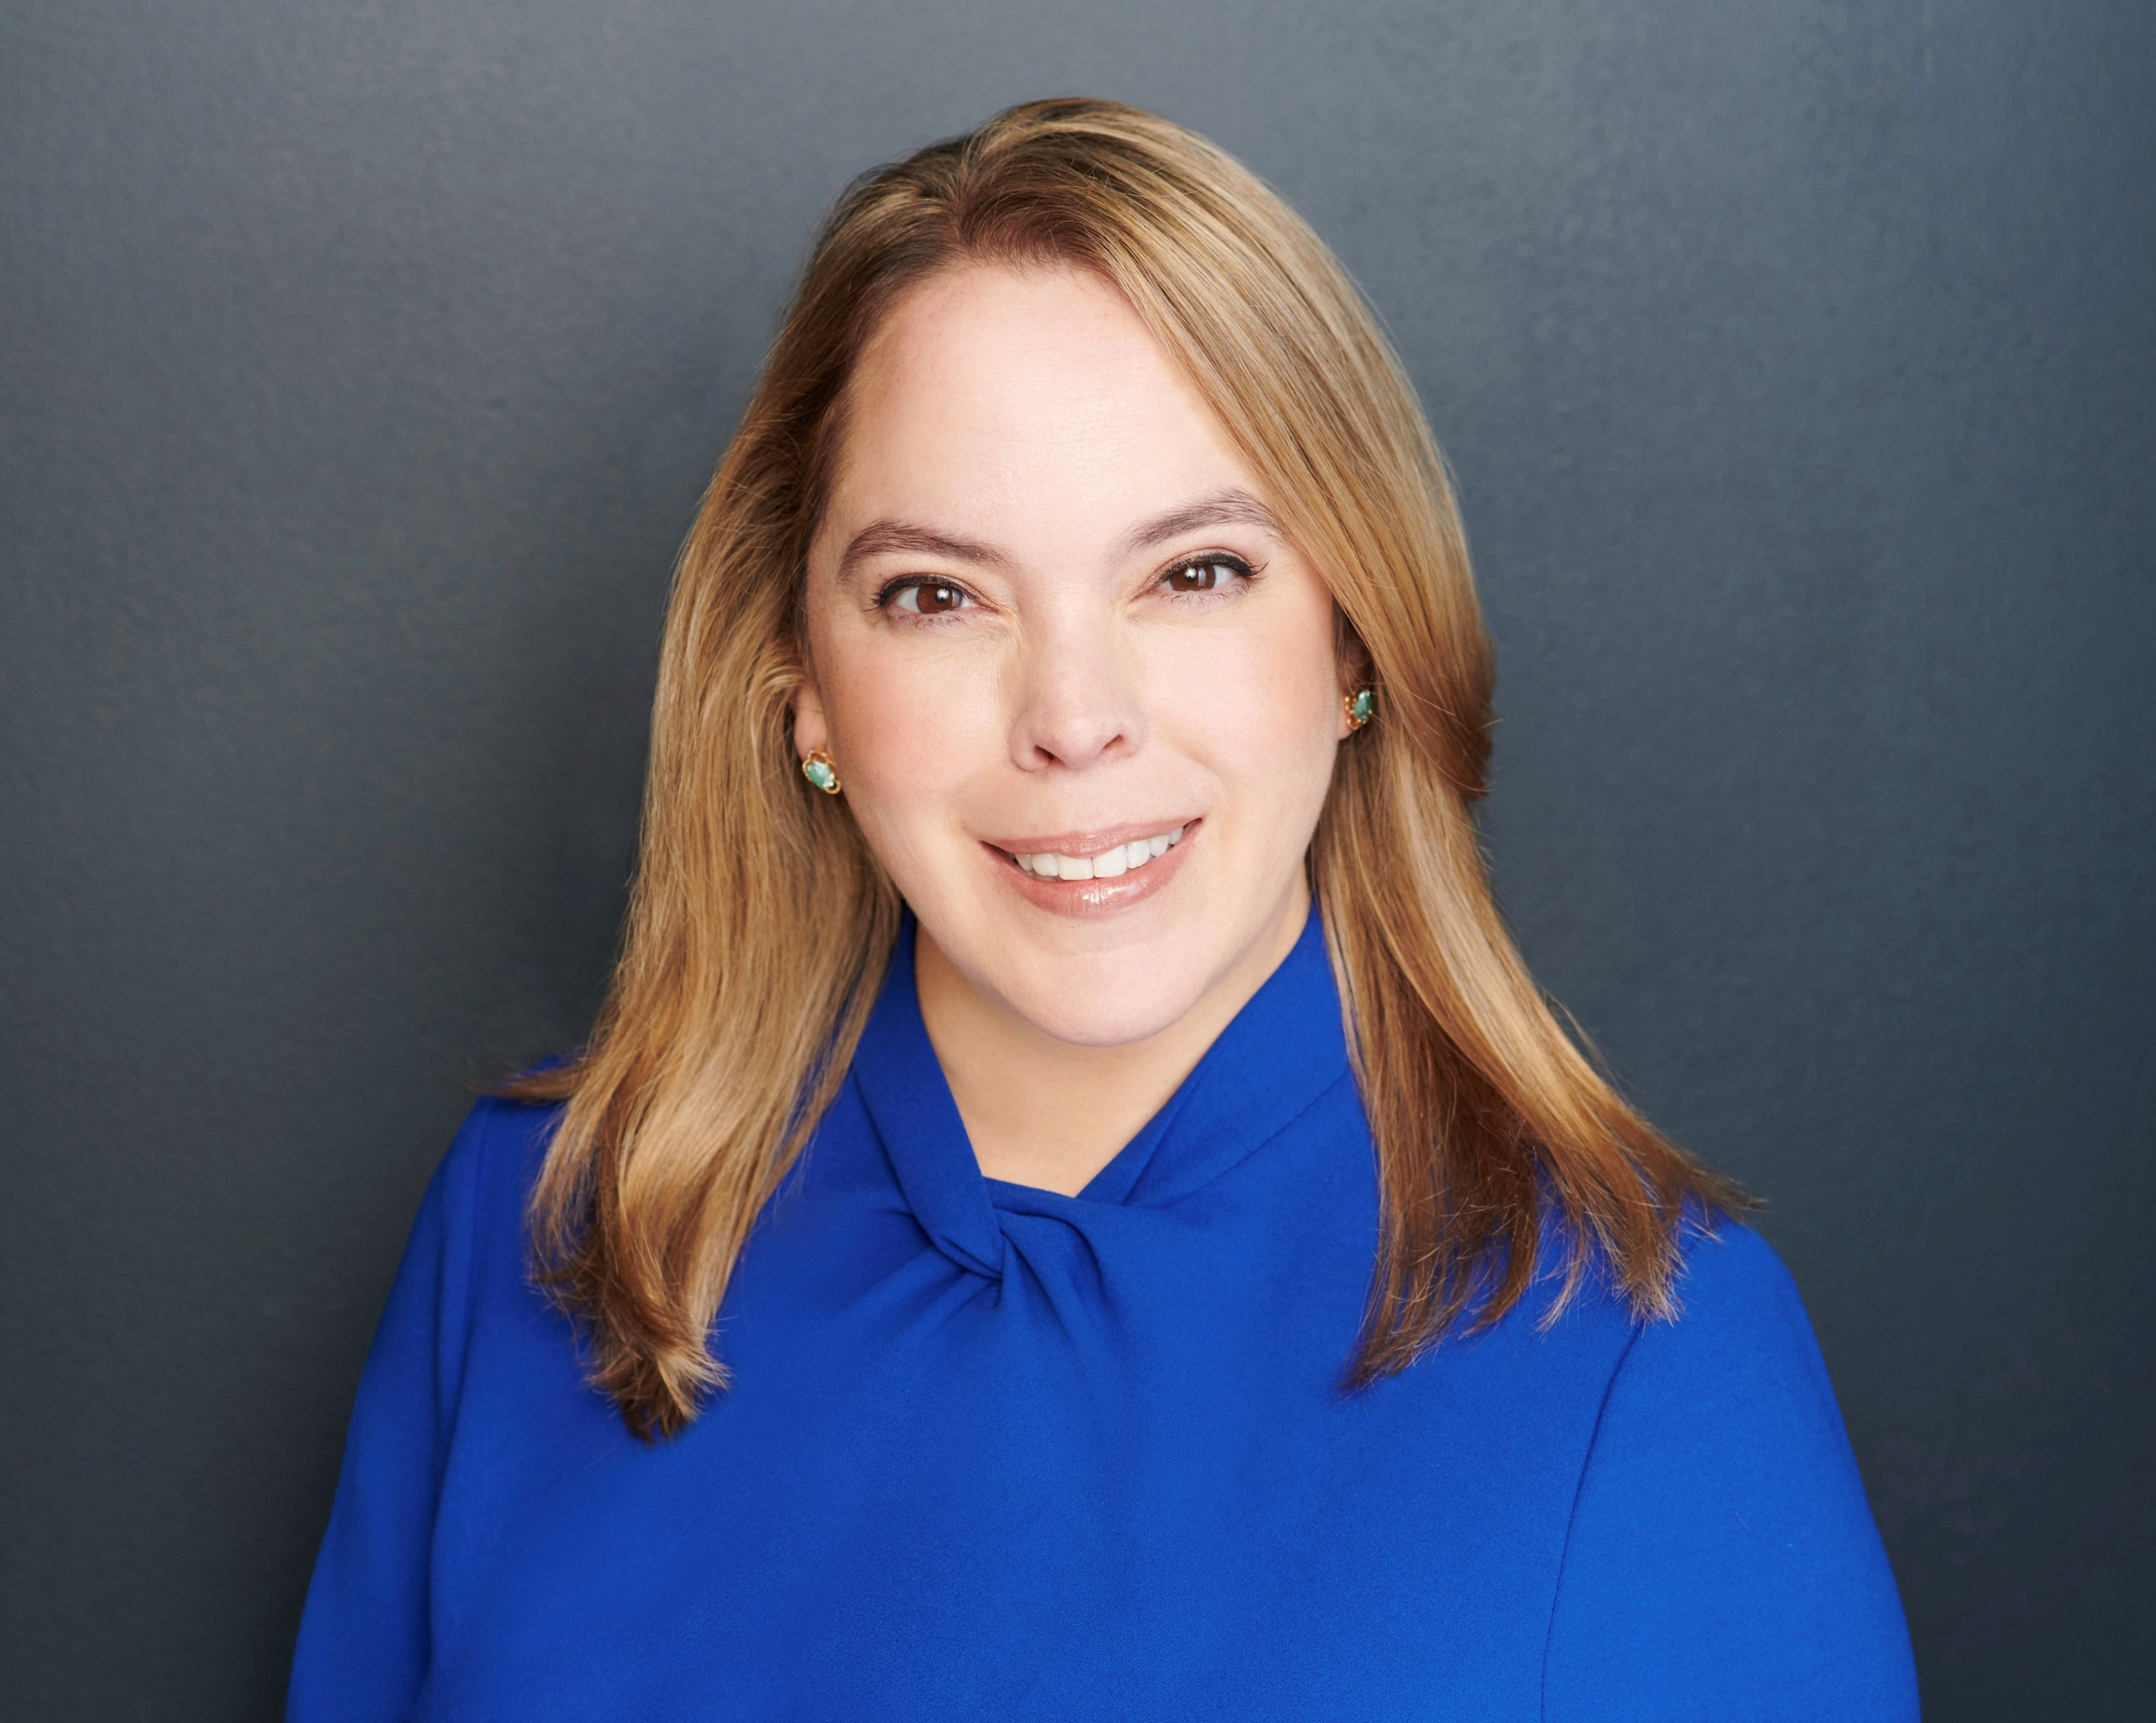 Olivia Troye Joins The National Insurance Crime Bureau As Vice President Of Strategy, Policy, & Plans